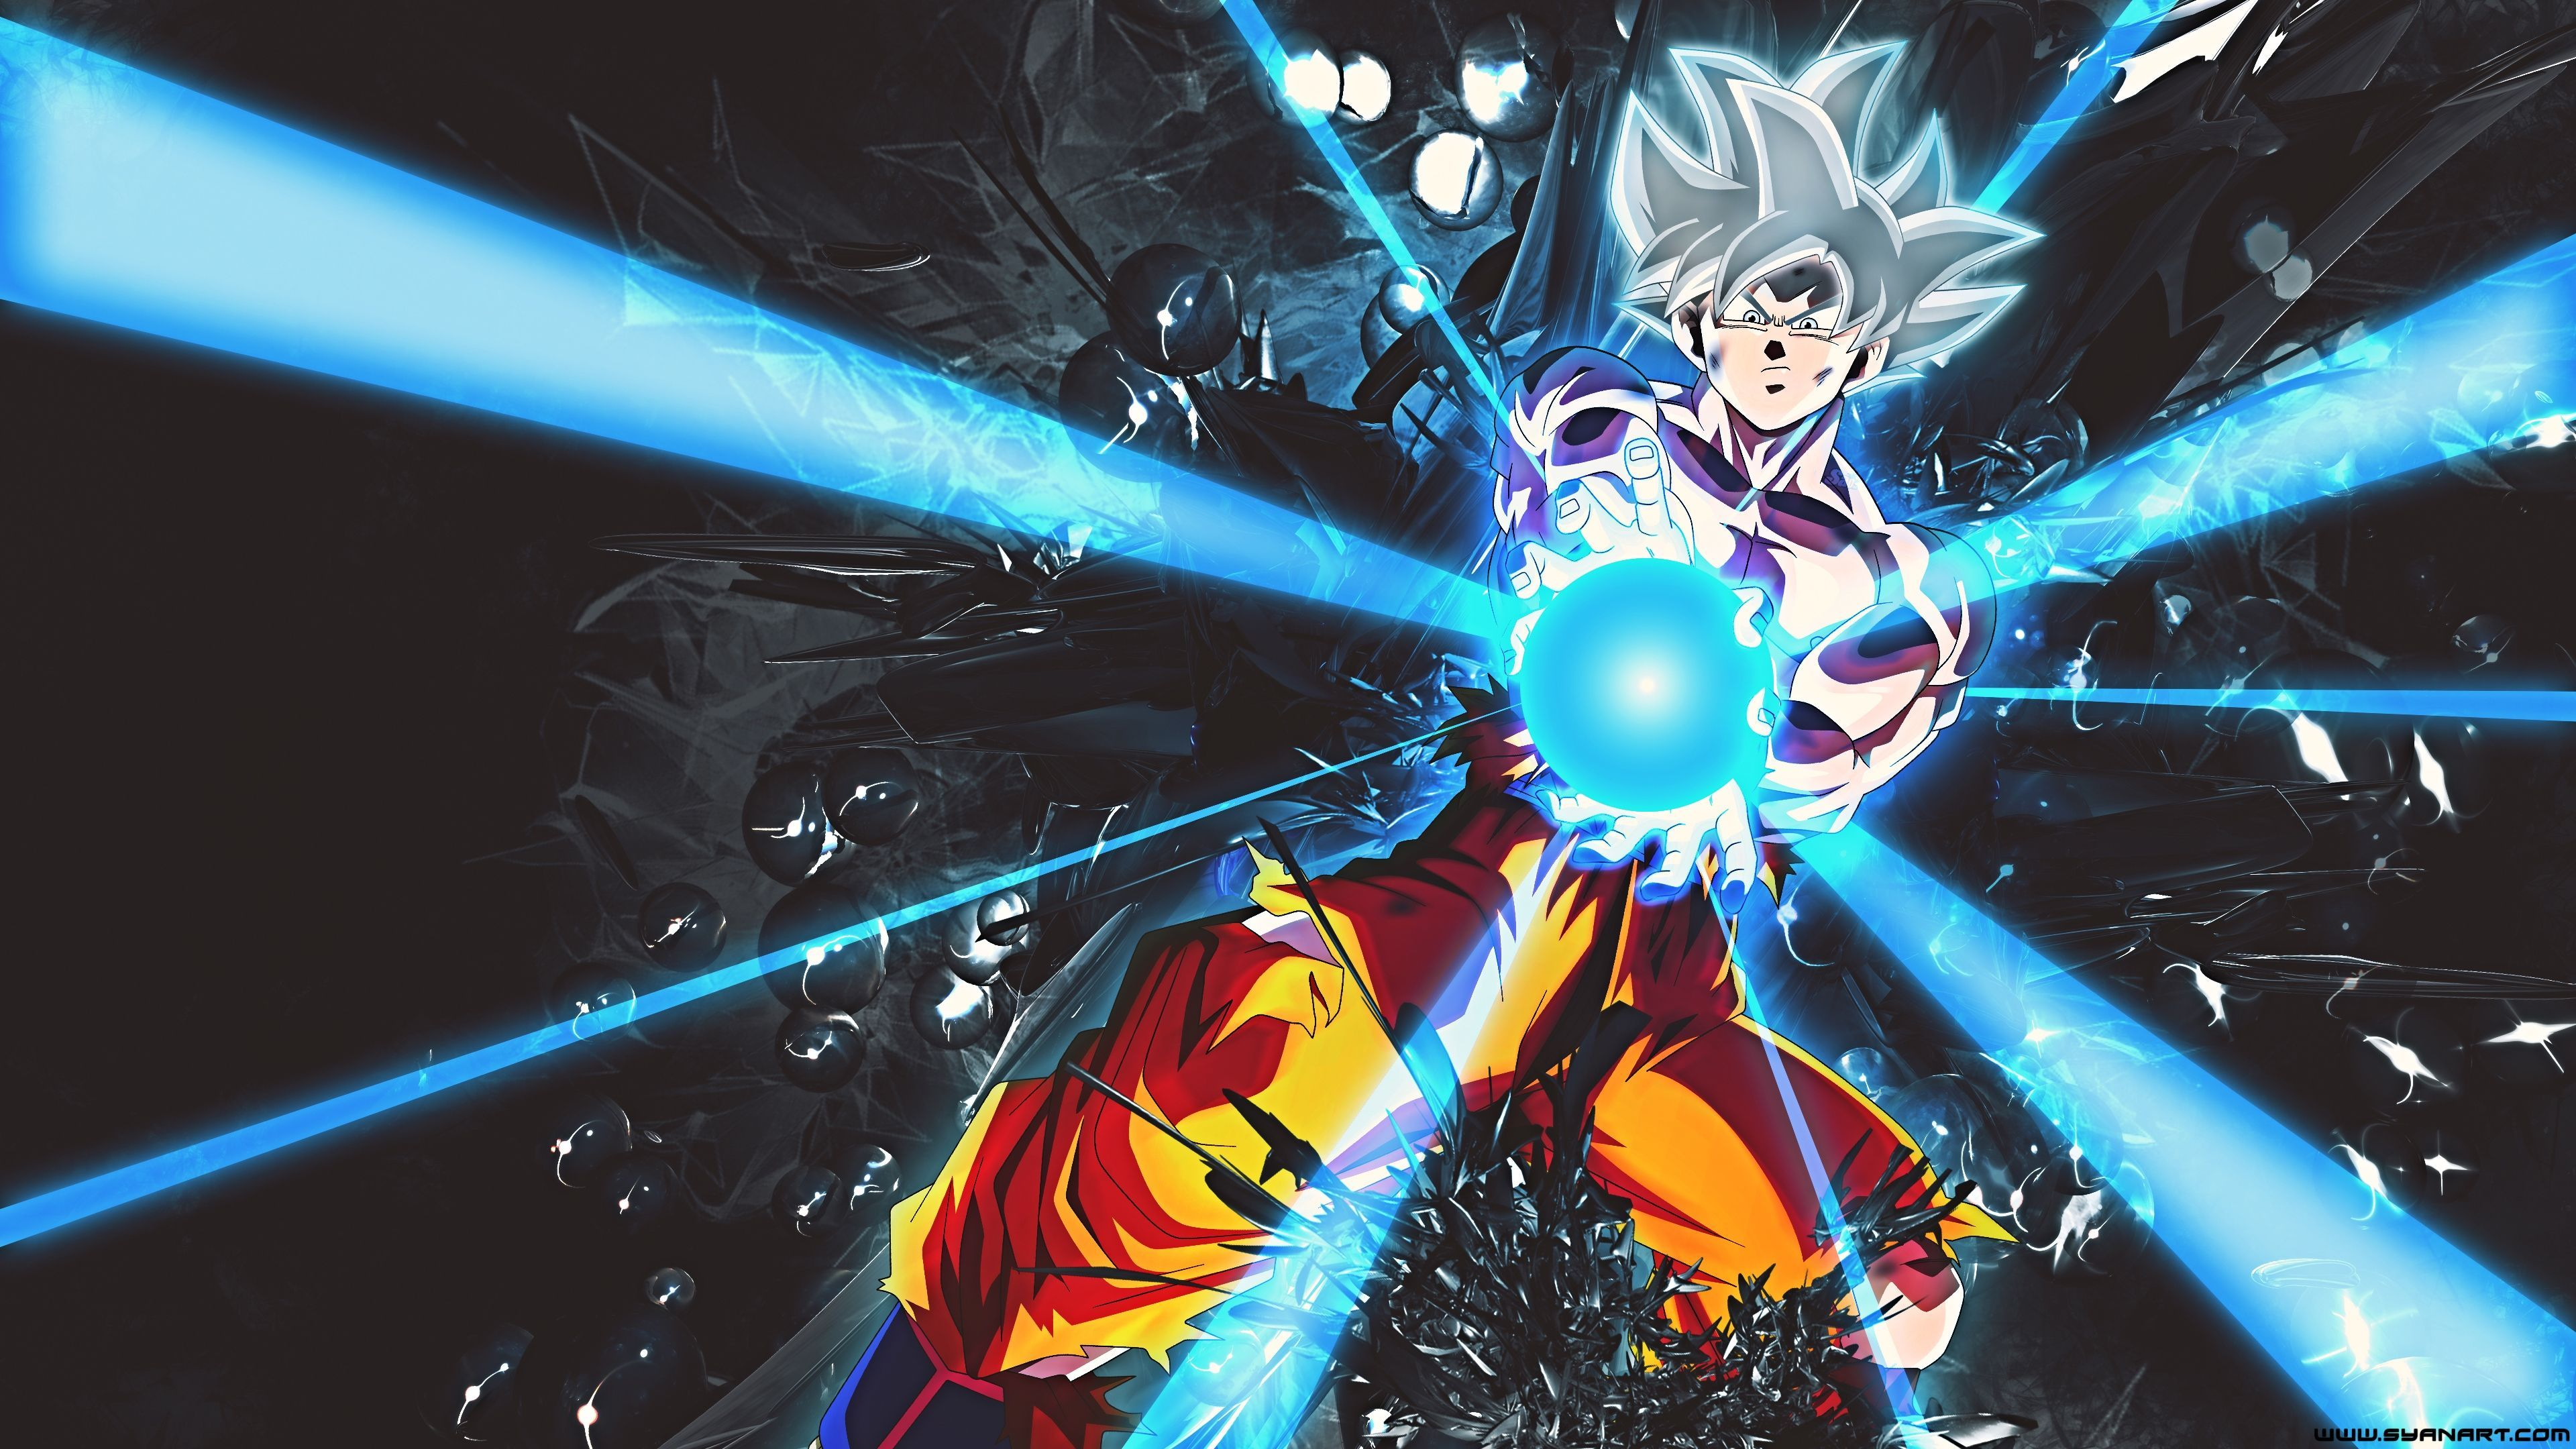 Dragon Ball Z 4k Ultra Hd Wallpaper For Mobile Https Ift Tt 36j93lh En 2020 Dragones Personajes De Goku Pantalla De Goku